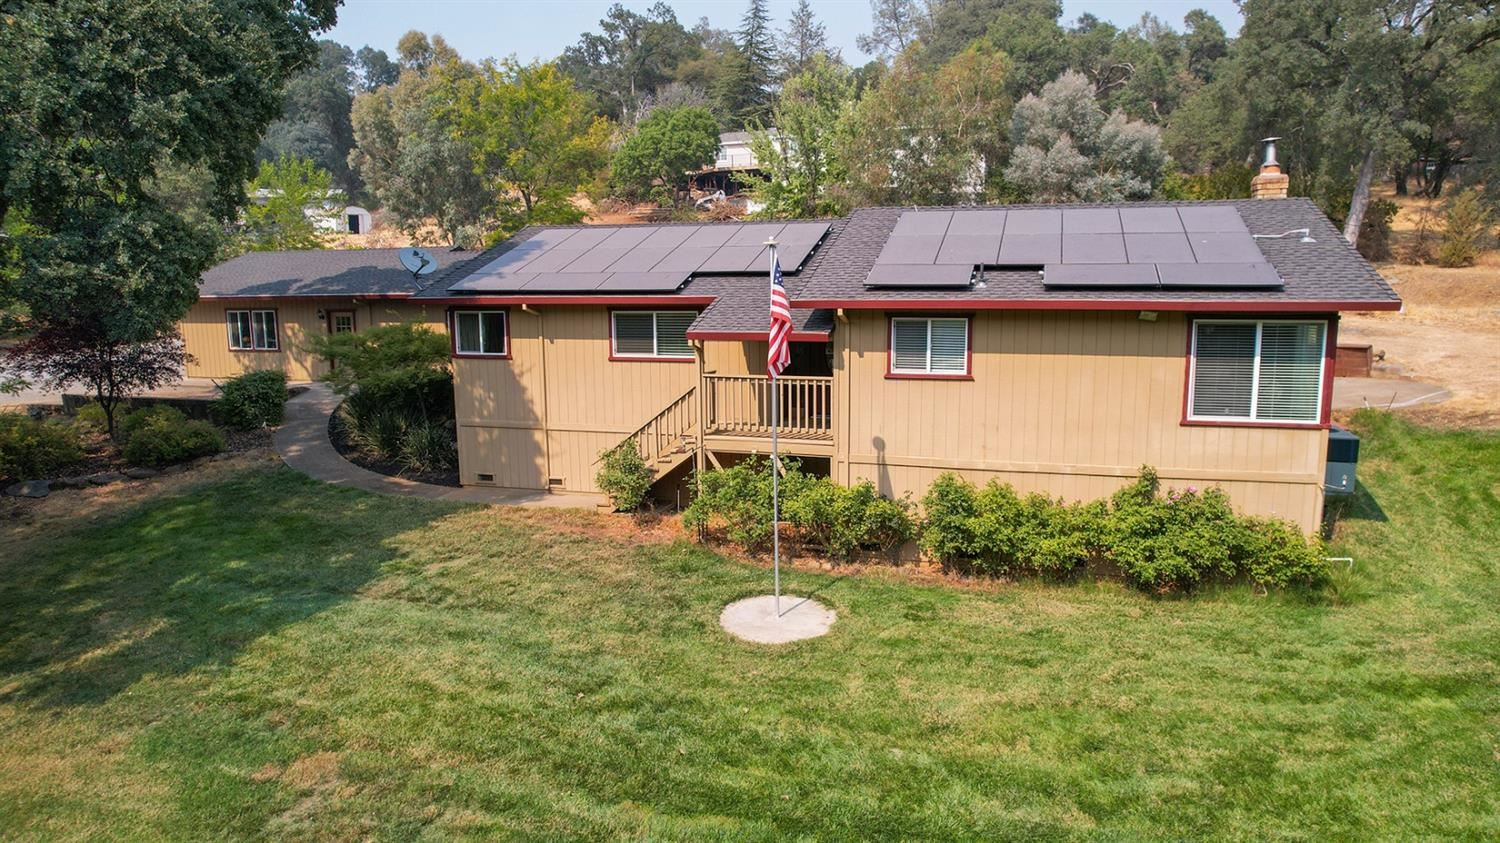 4511 Panorama Drive, Placerville, CA 95667 - MLS#: 221109112